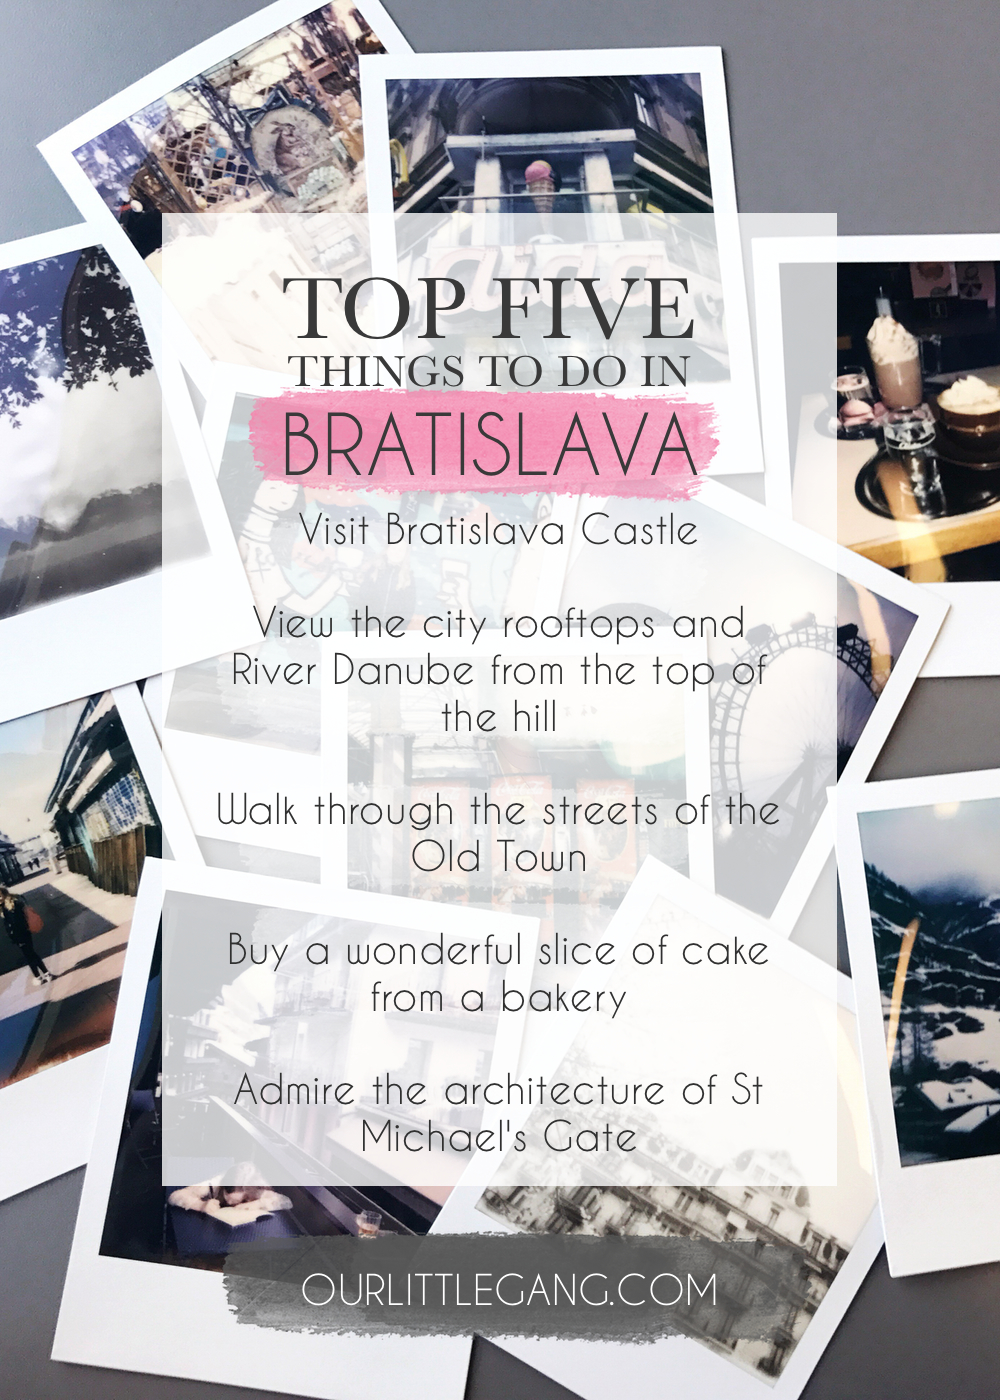 top-five-things-to-do-in-bratislava-slovakia.jpg